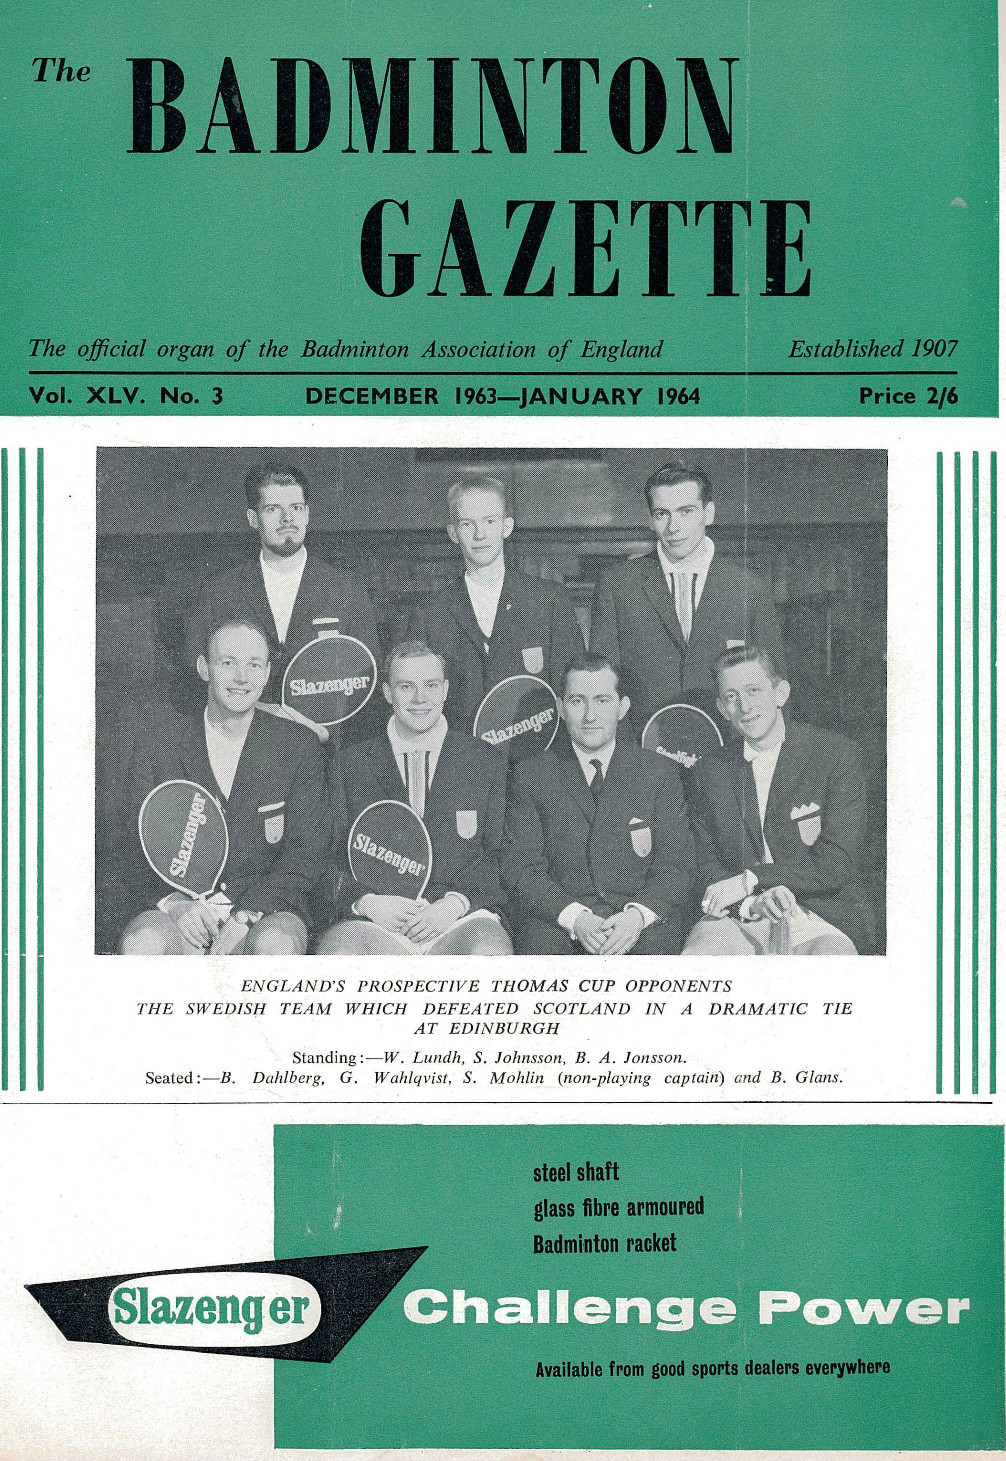 Mohlin (seated 2nd from r) leads swedish t. cup team - badminton gazette dec 1963-jan 1964 cover